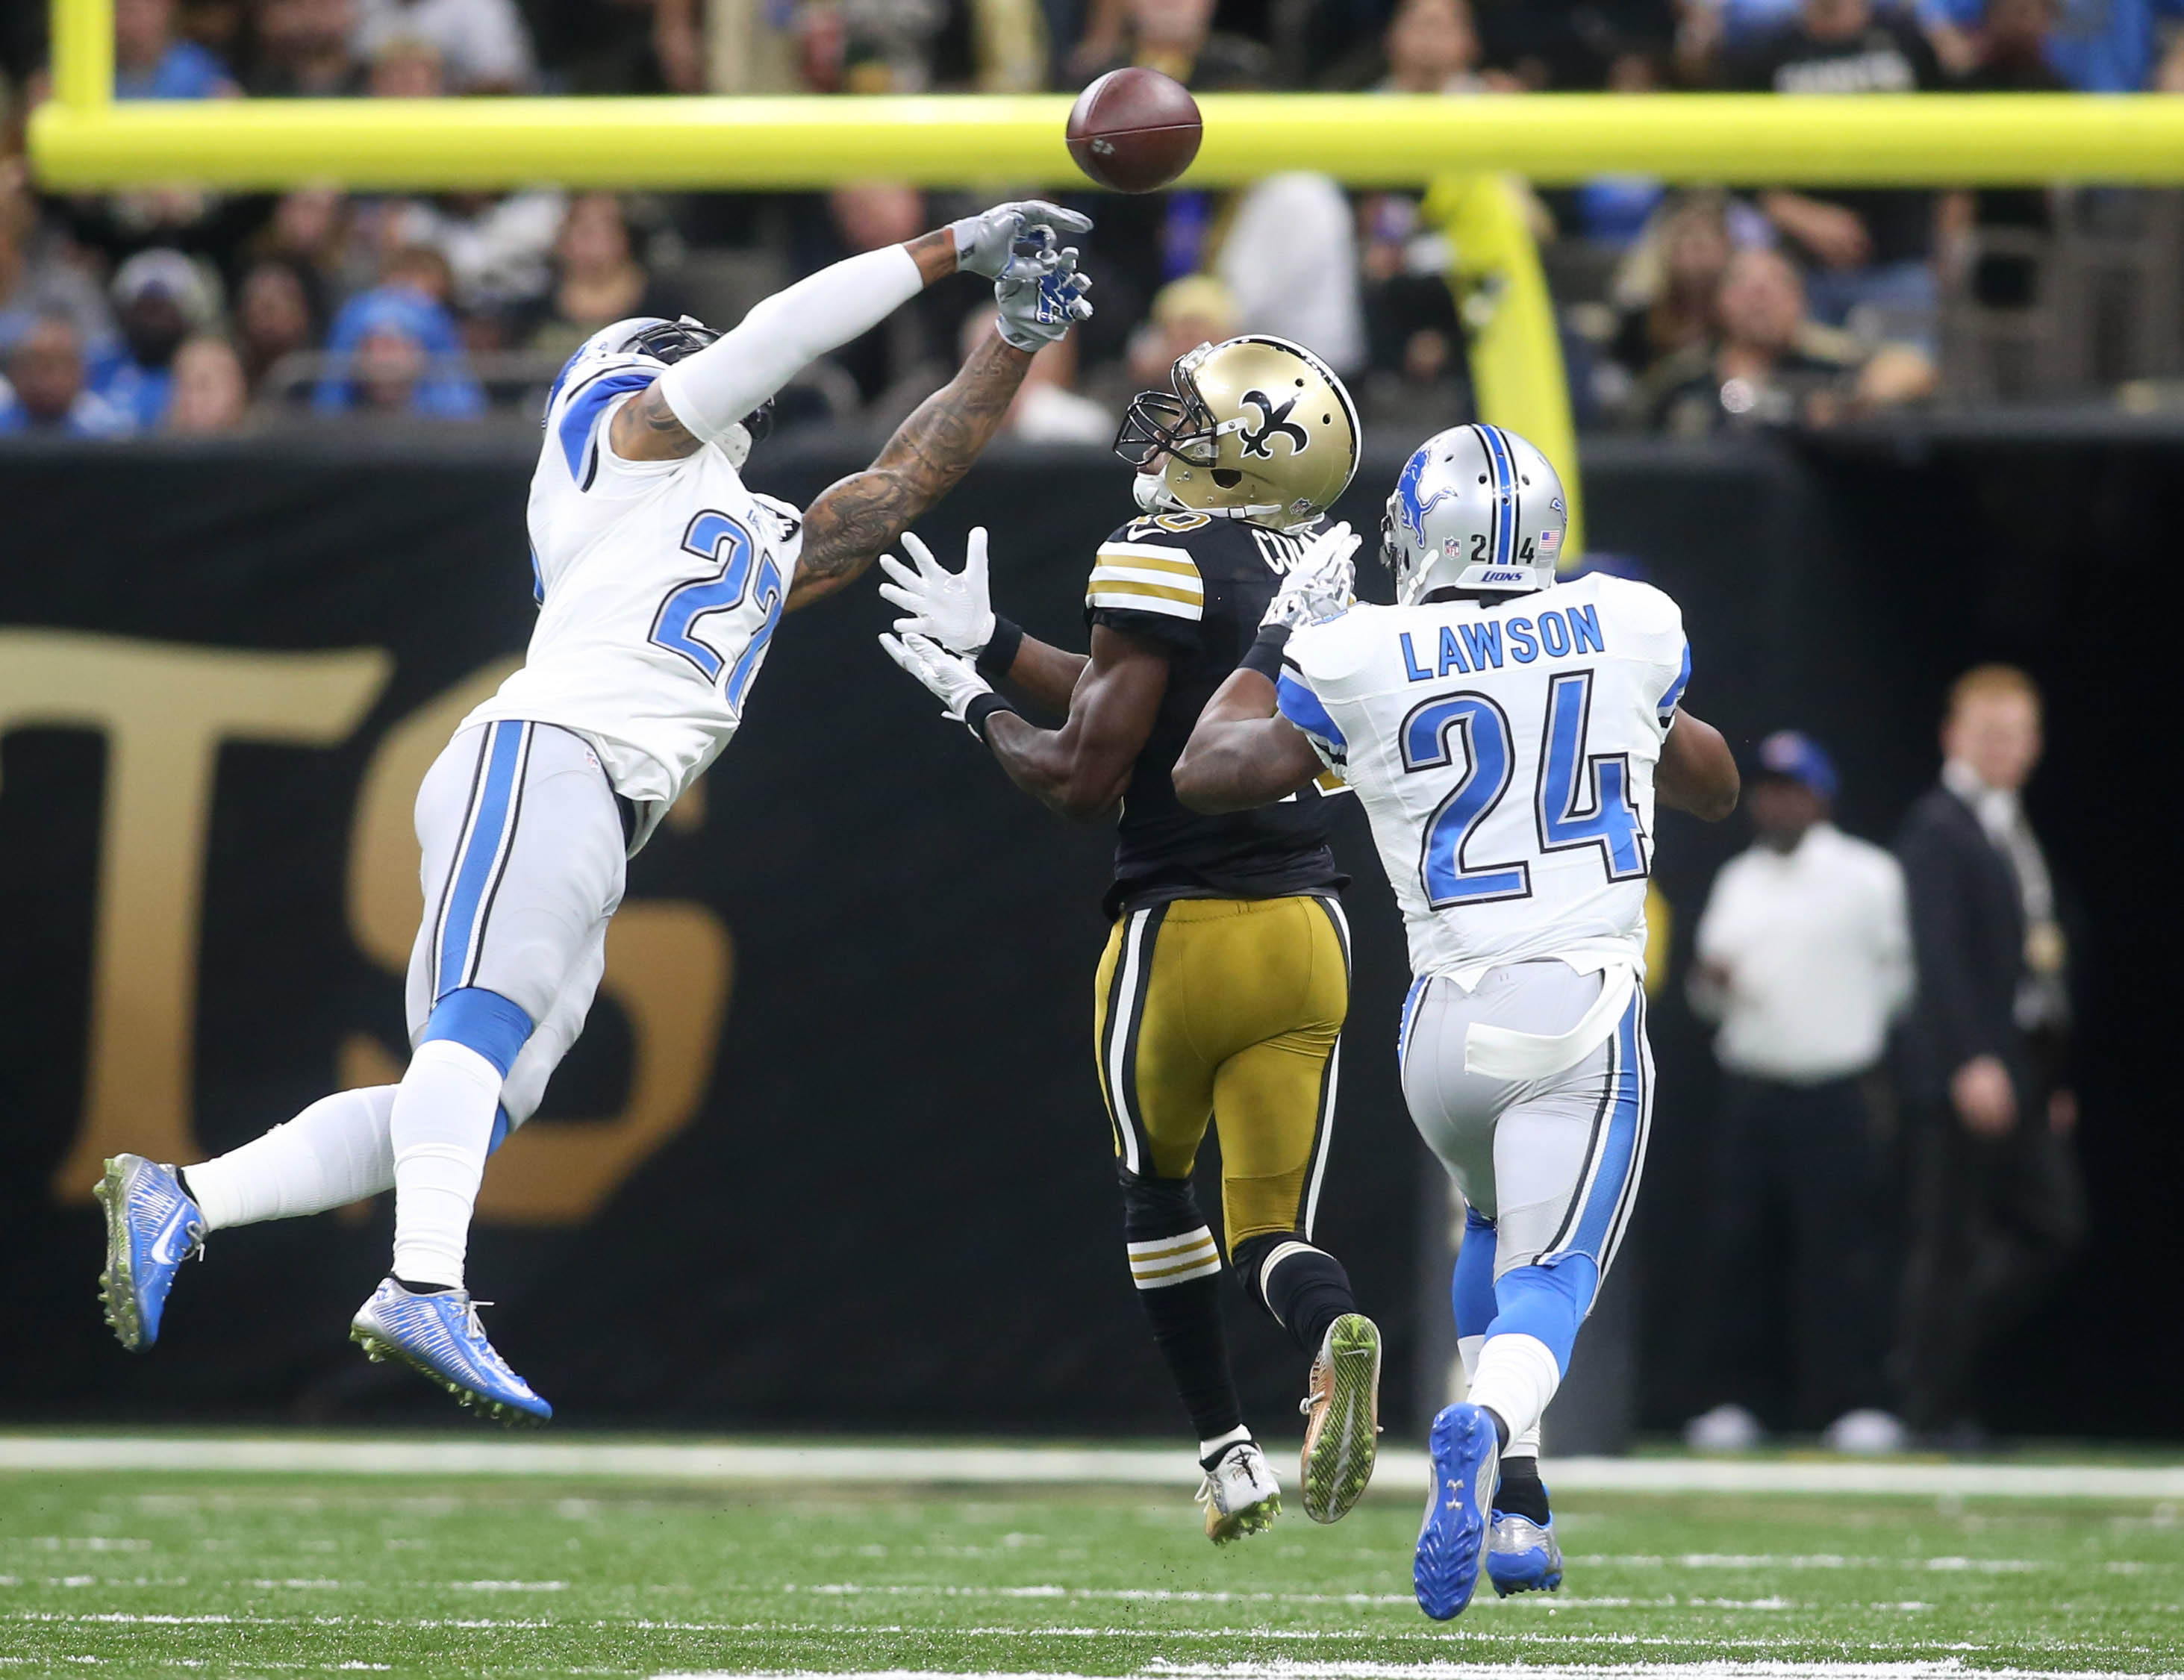 9725319-nfl-detroit-lions-at-new-orleans-saints